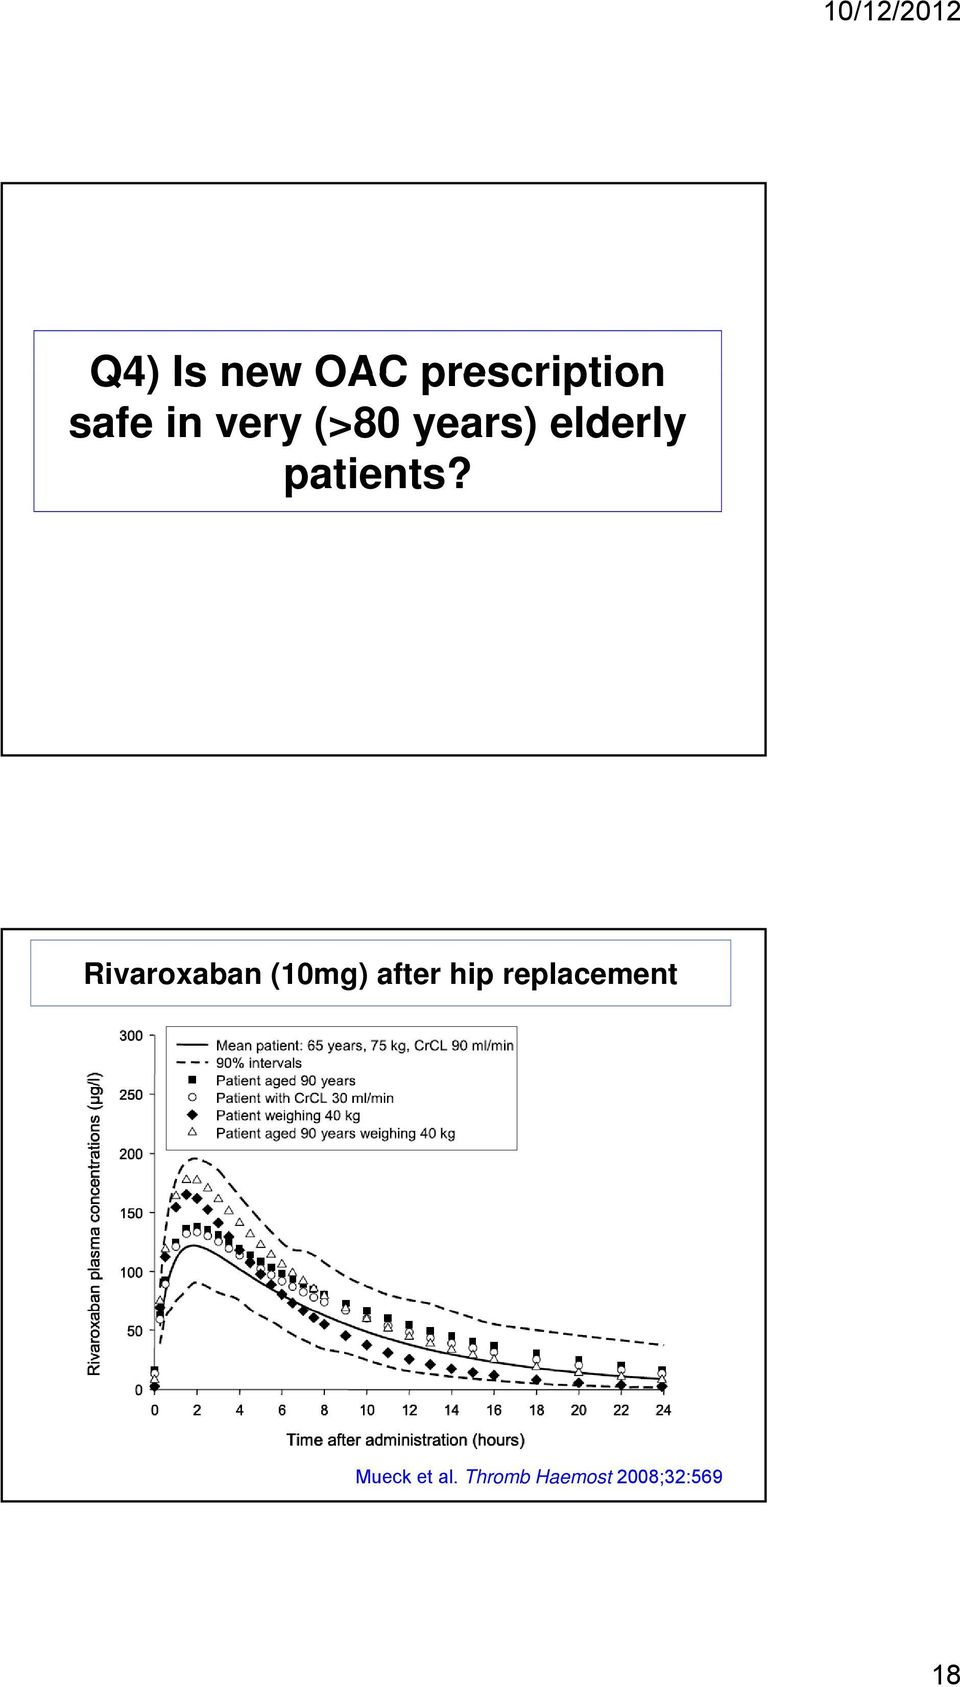 Rivaroxaban (10mg) after hip